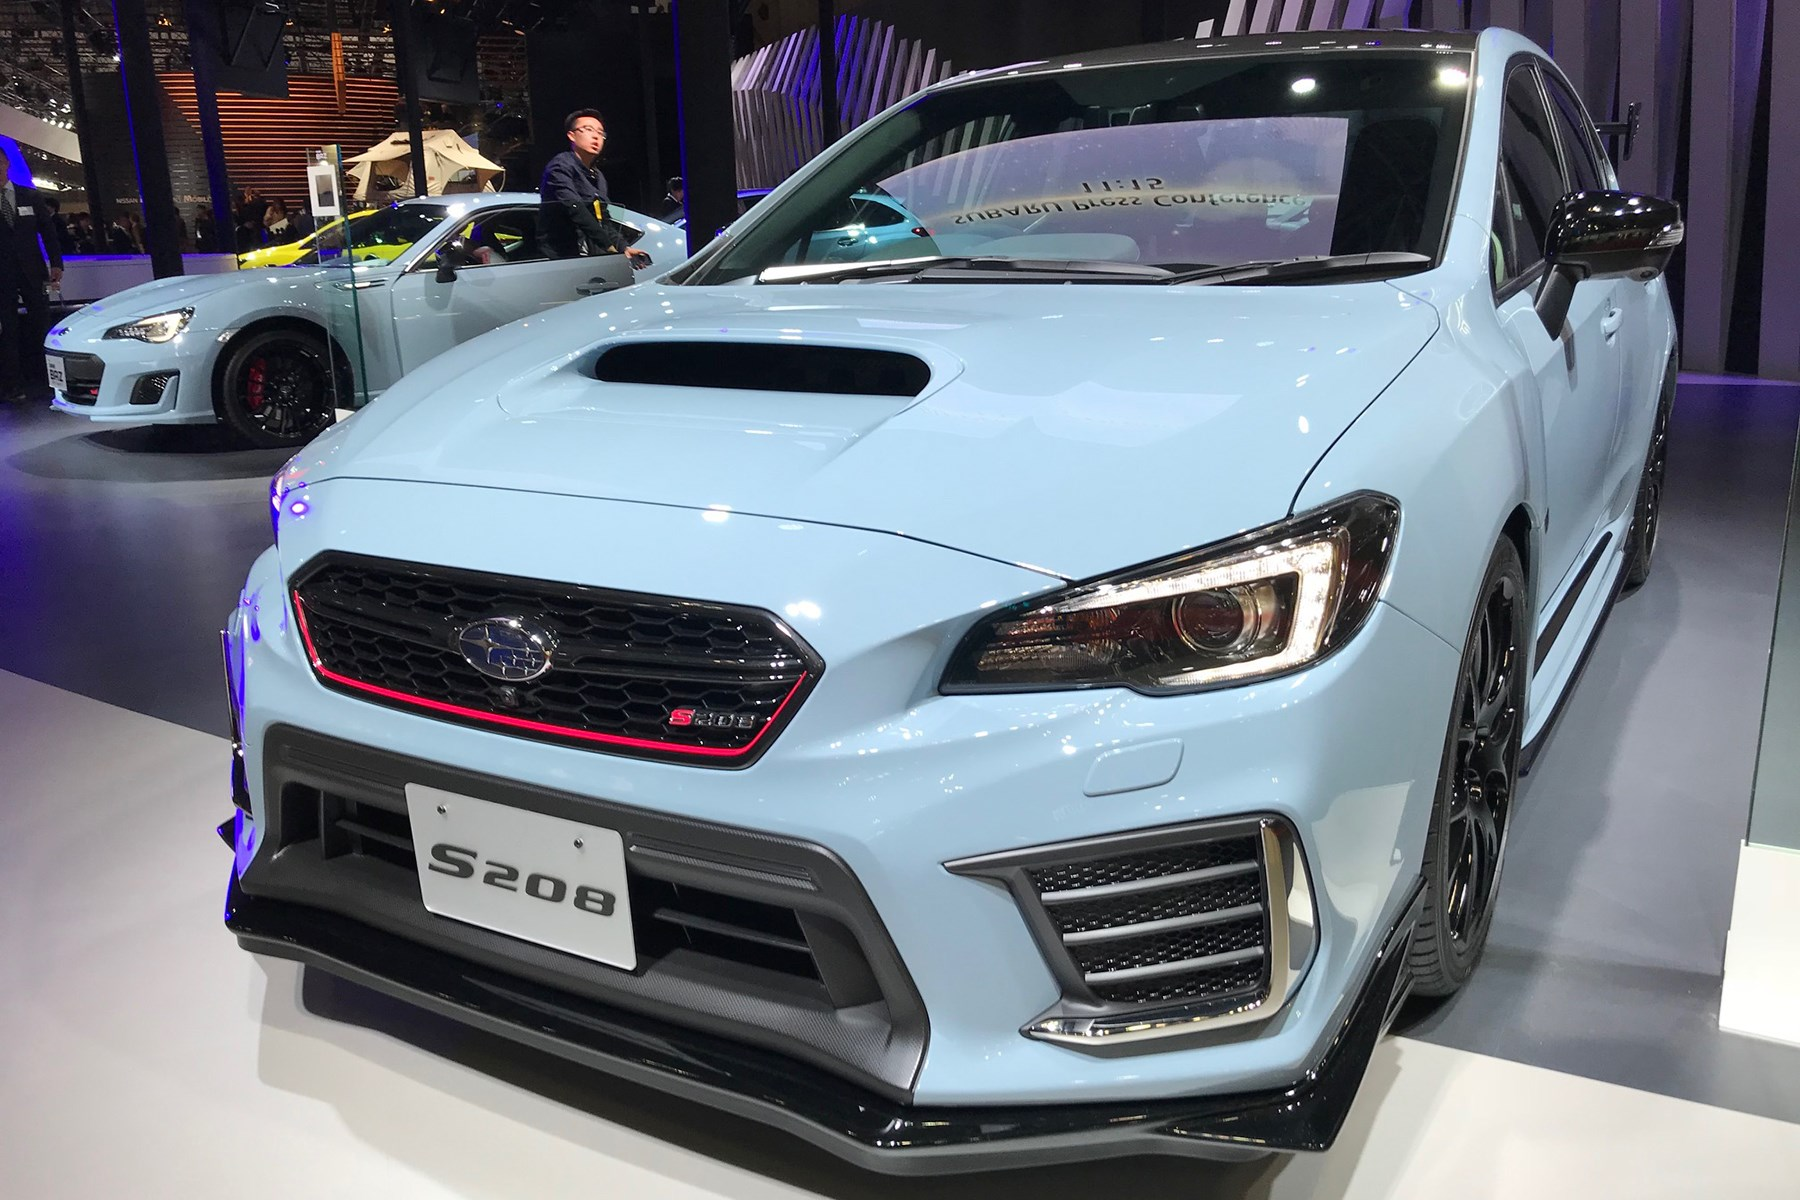 Subaru Wrx Sti S208 New Highly Tuned Is Limited To 450 Cars